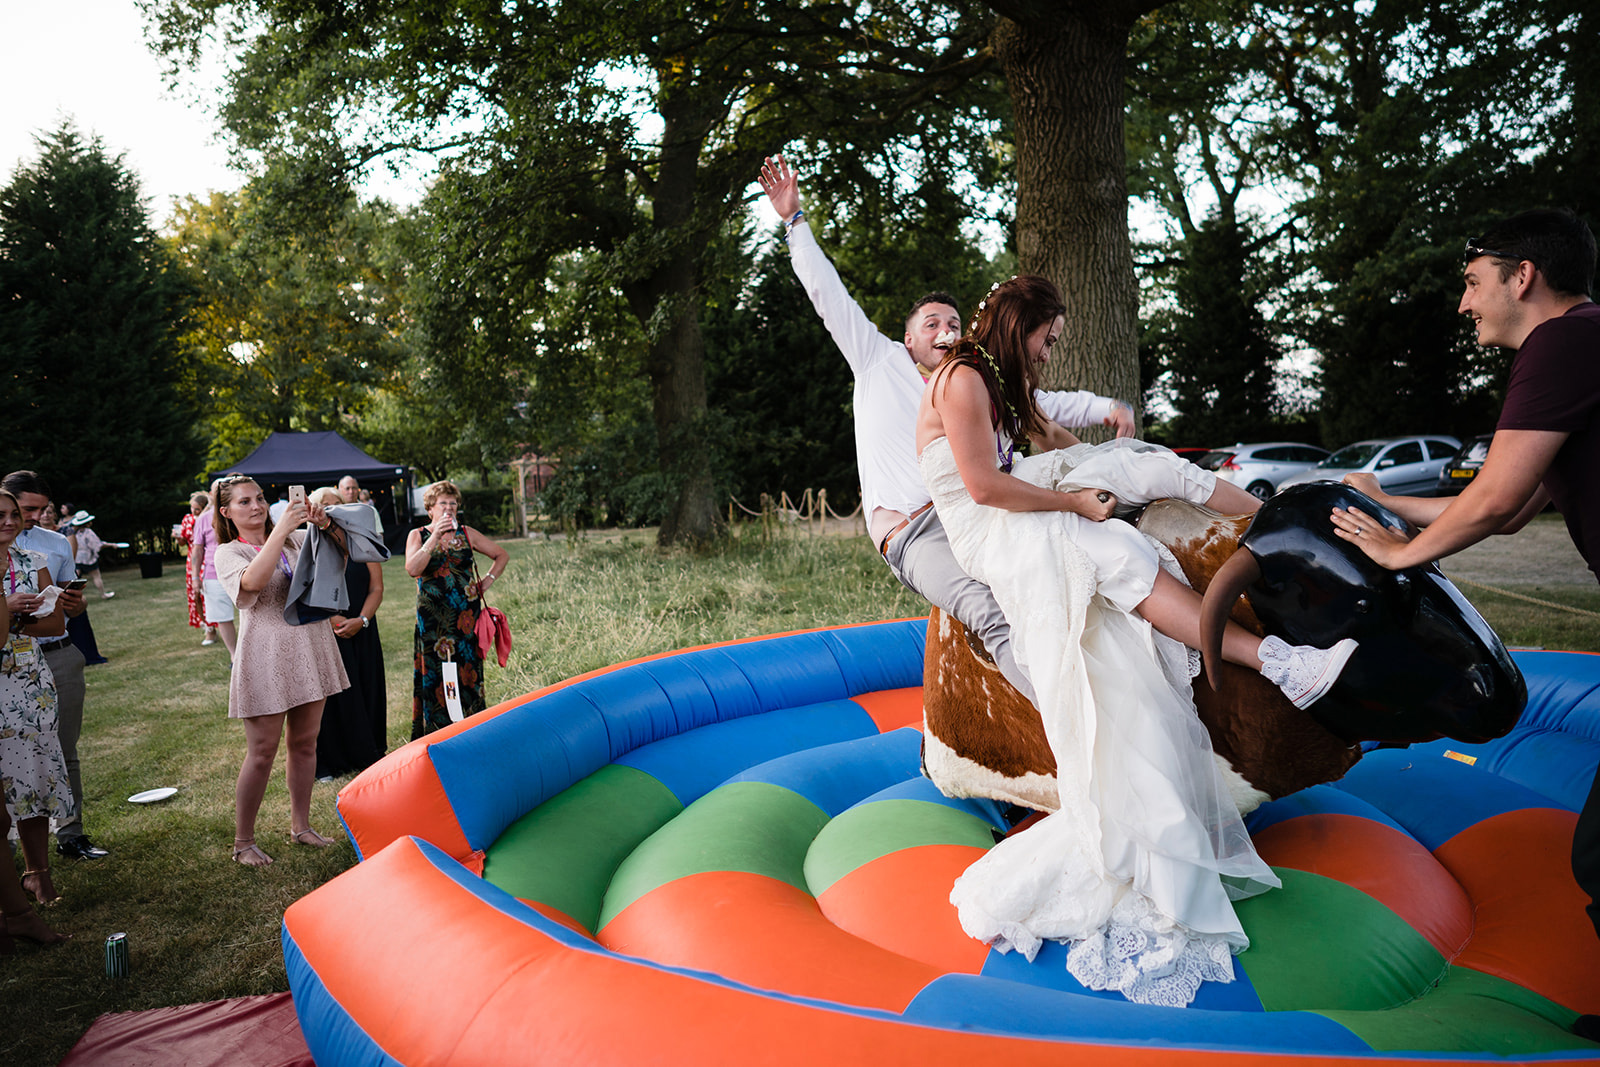 festival wedding bucking bronco